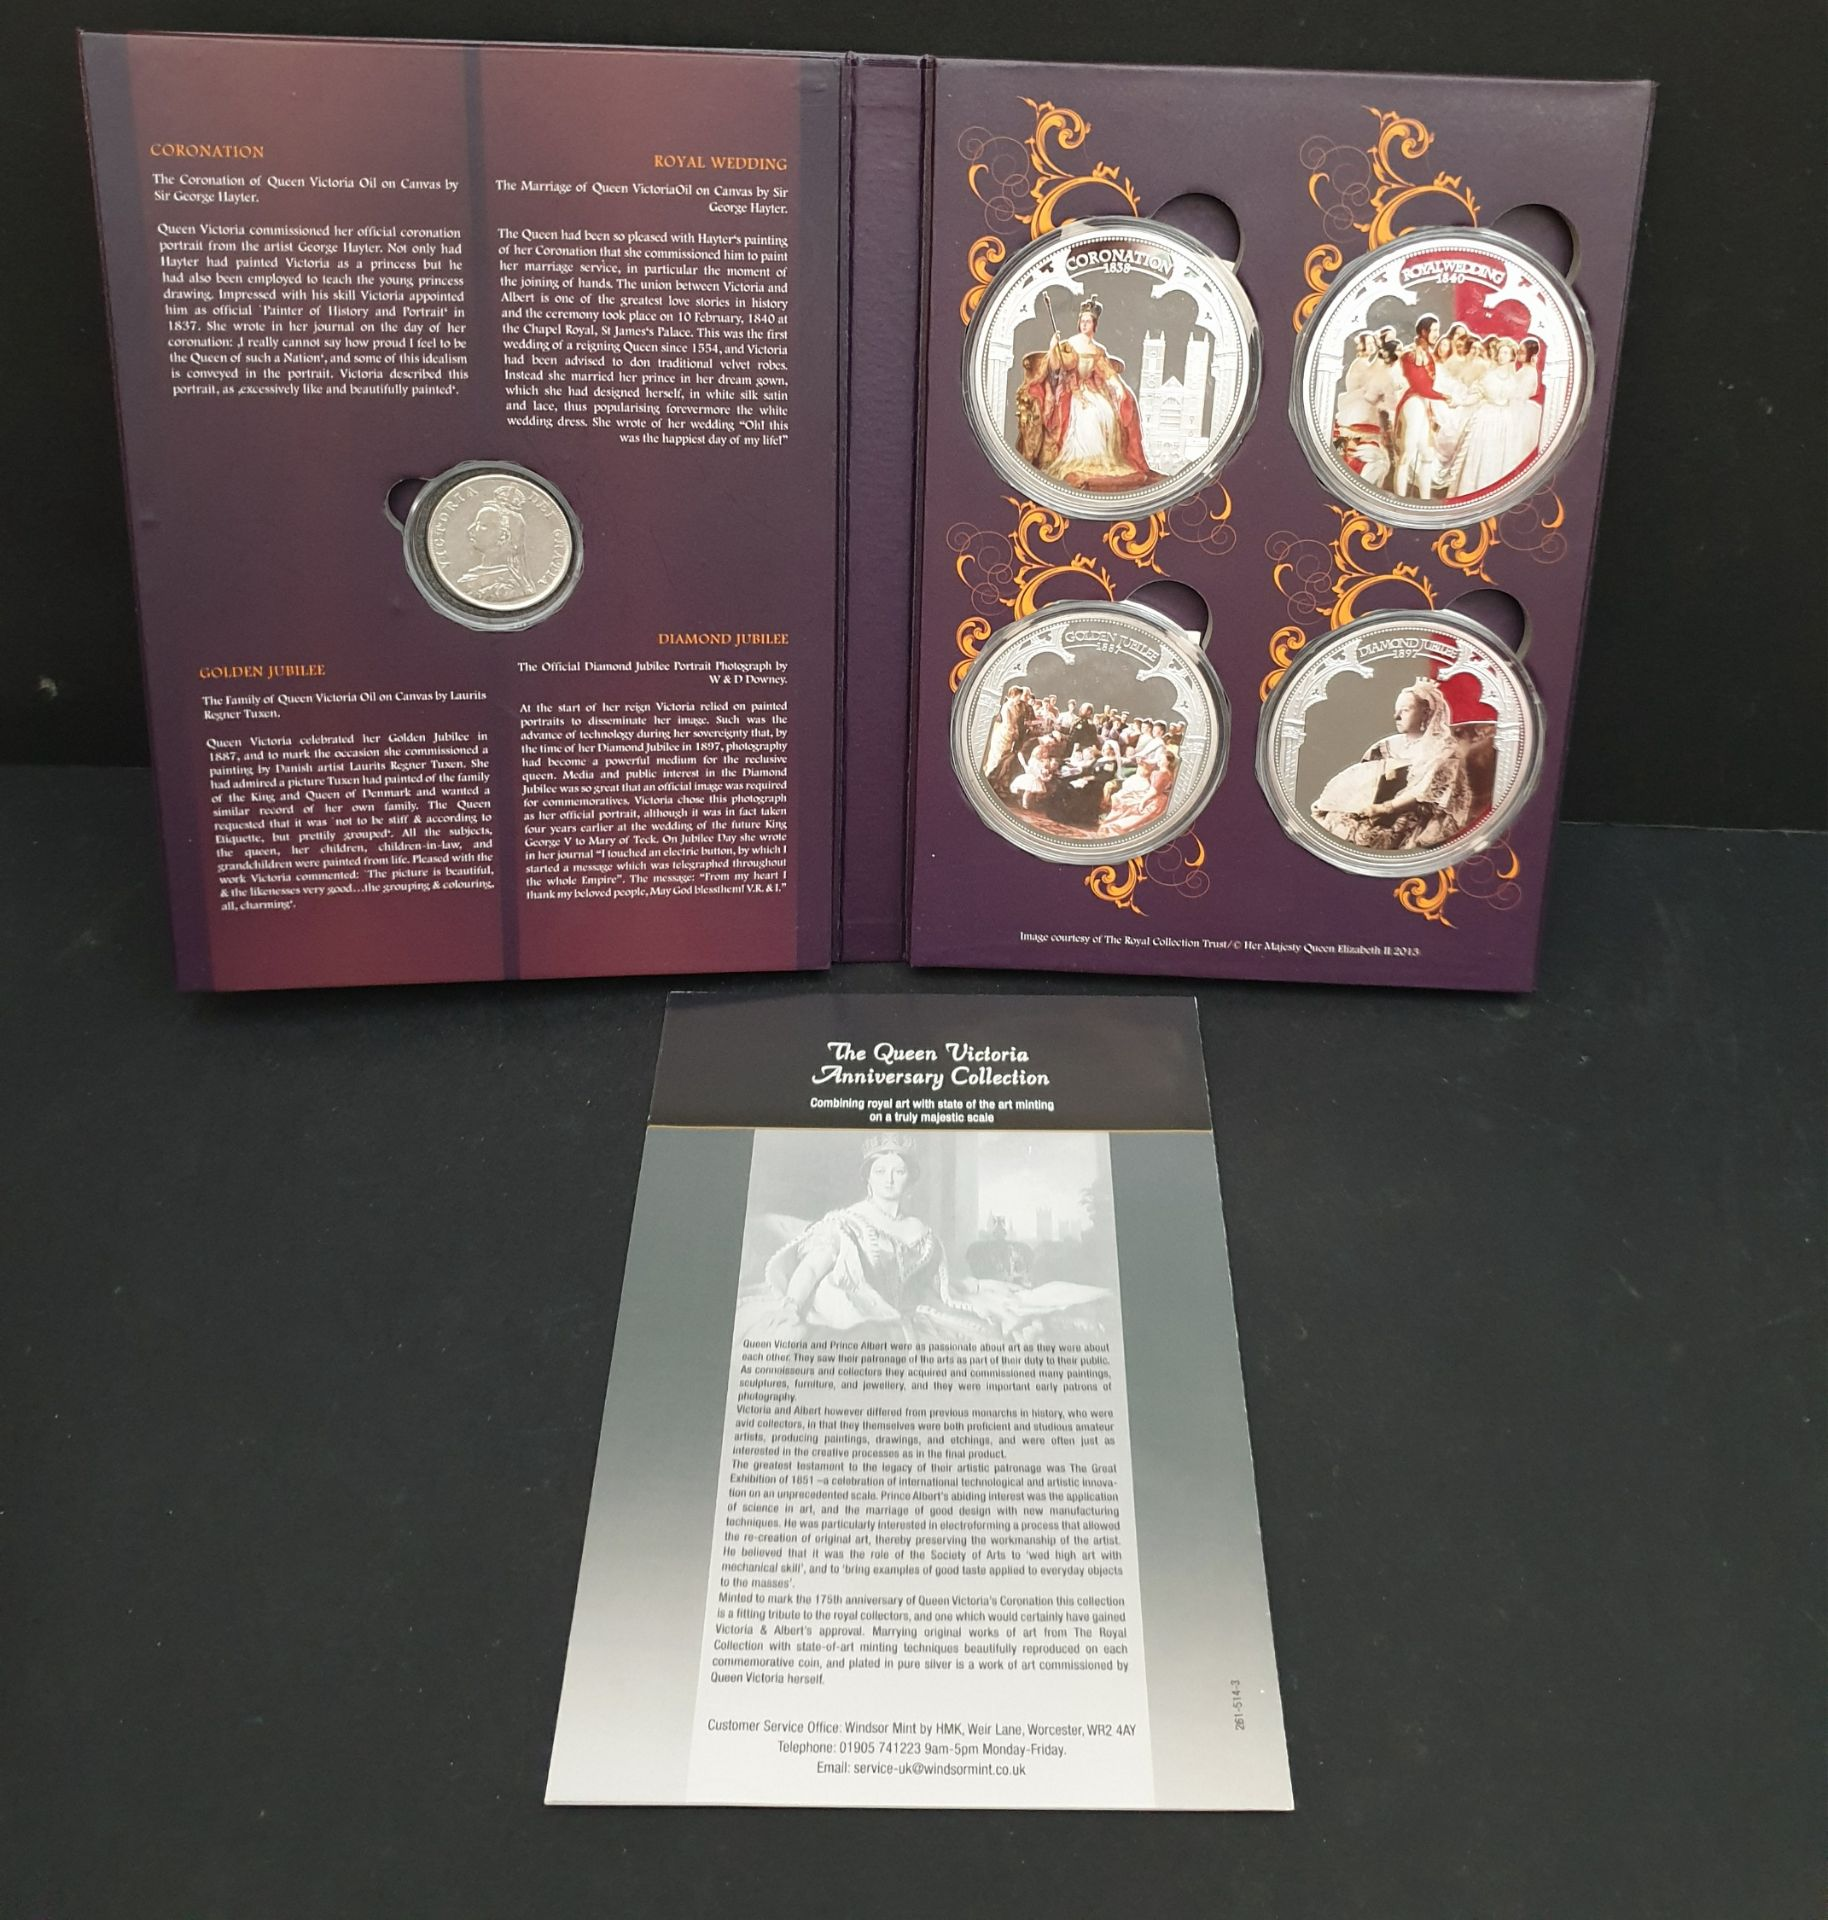 Lot 14 - Collectable Coins Queen Victoria Anniversary Collection